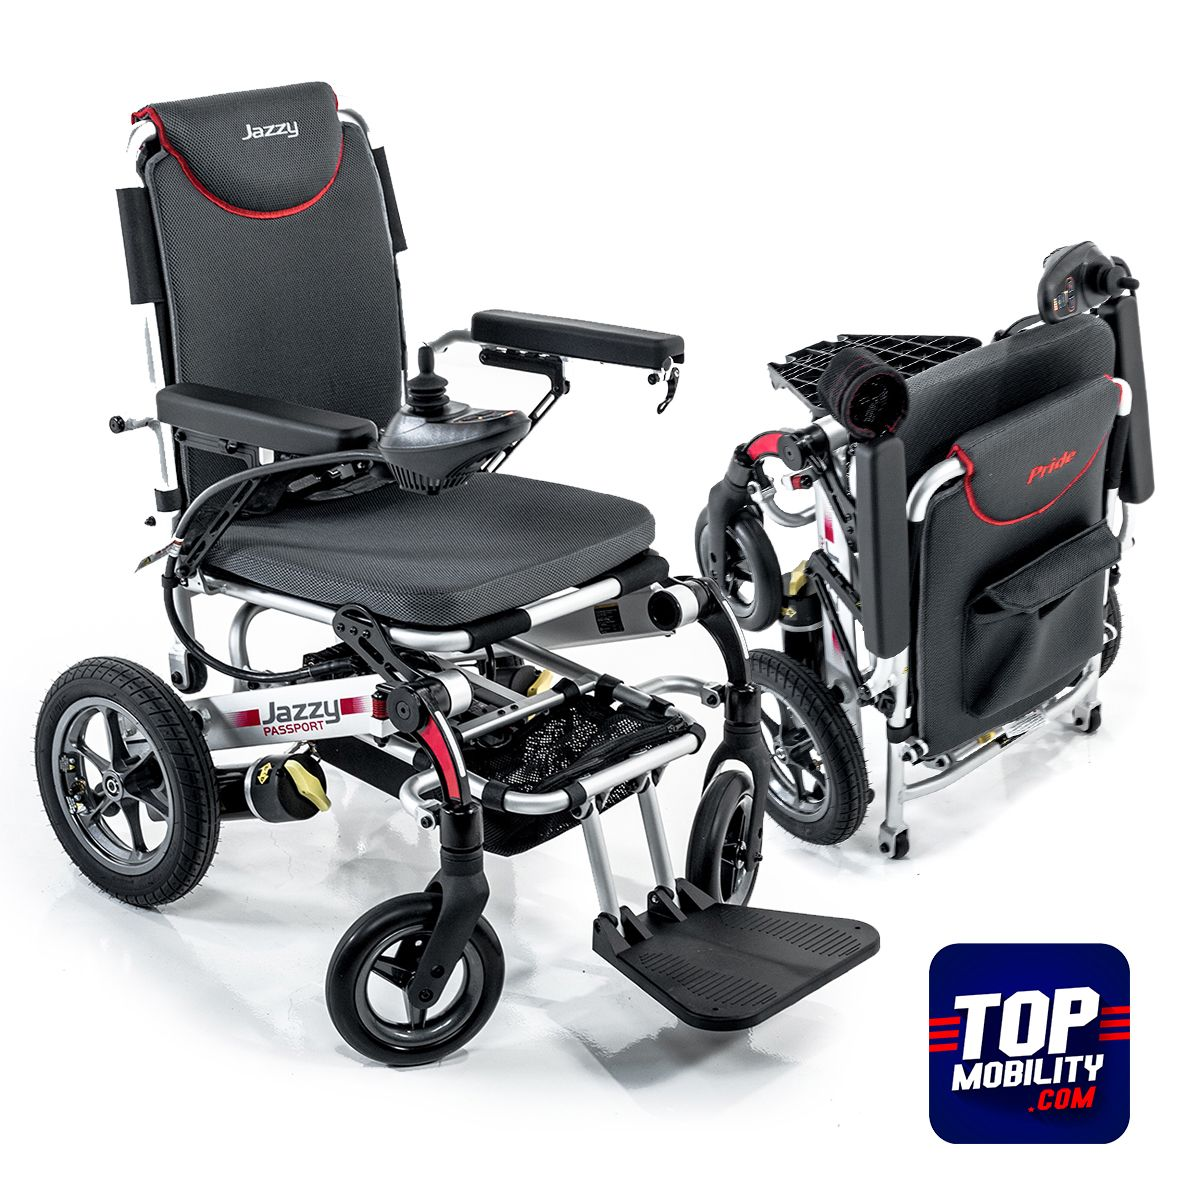 This ultra portable power wheelchair folds in seconds